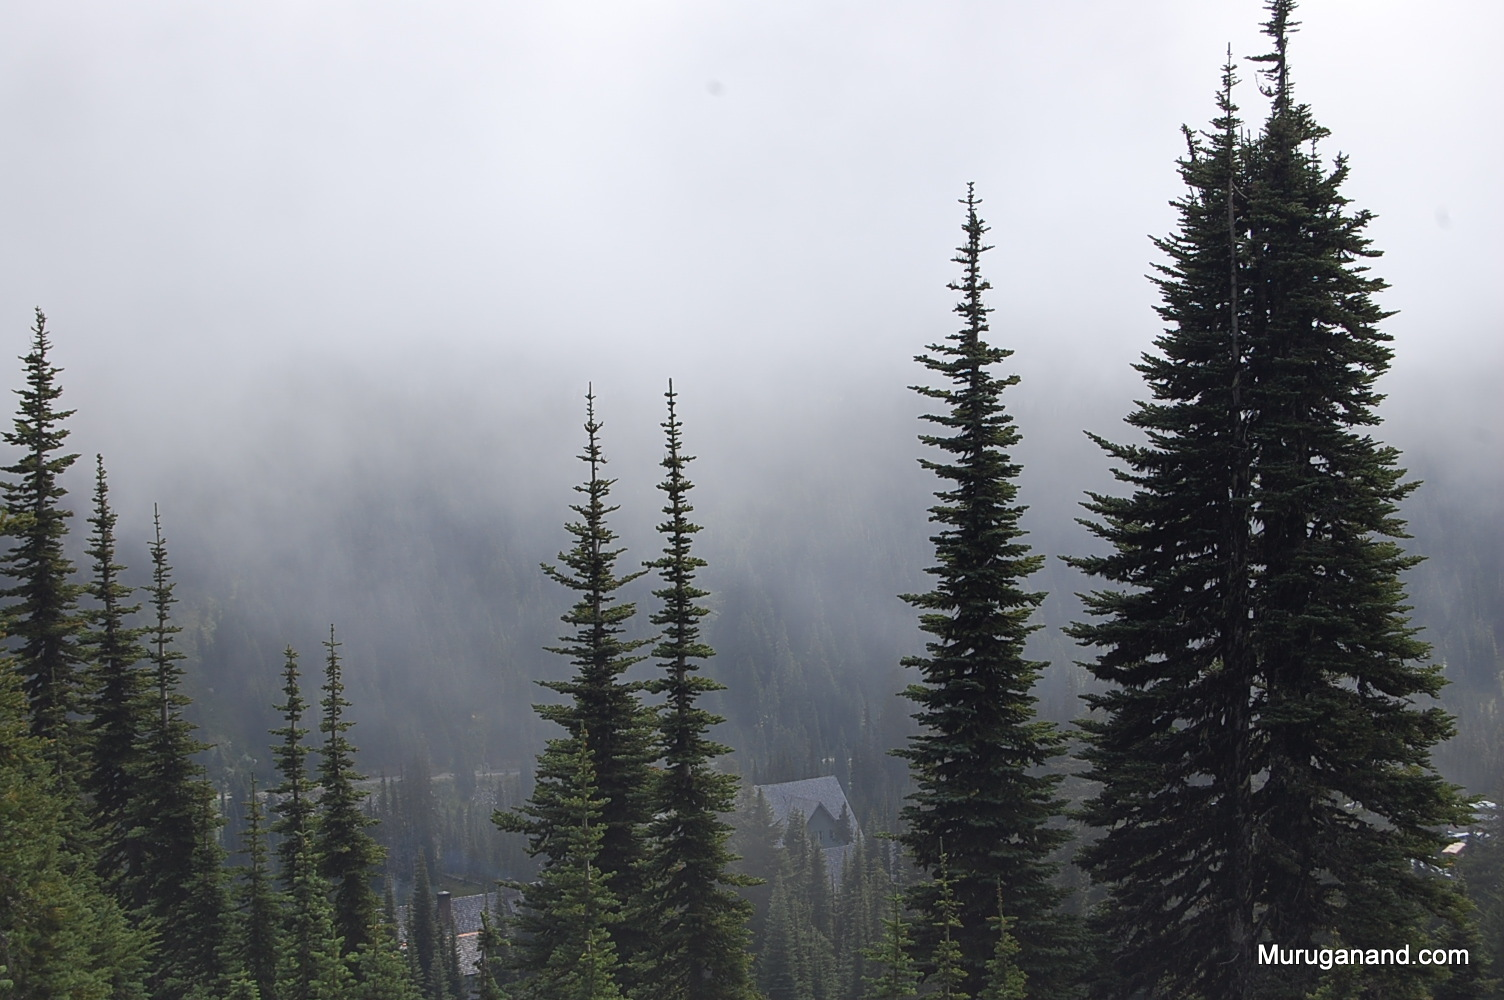 The trees, mist and the mountain make it a holy place